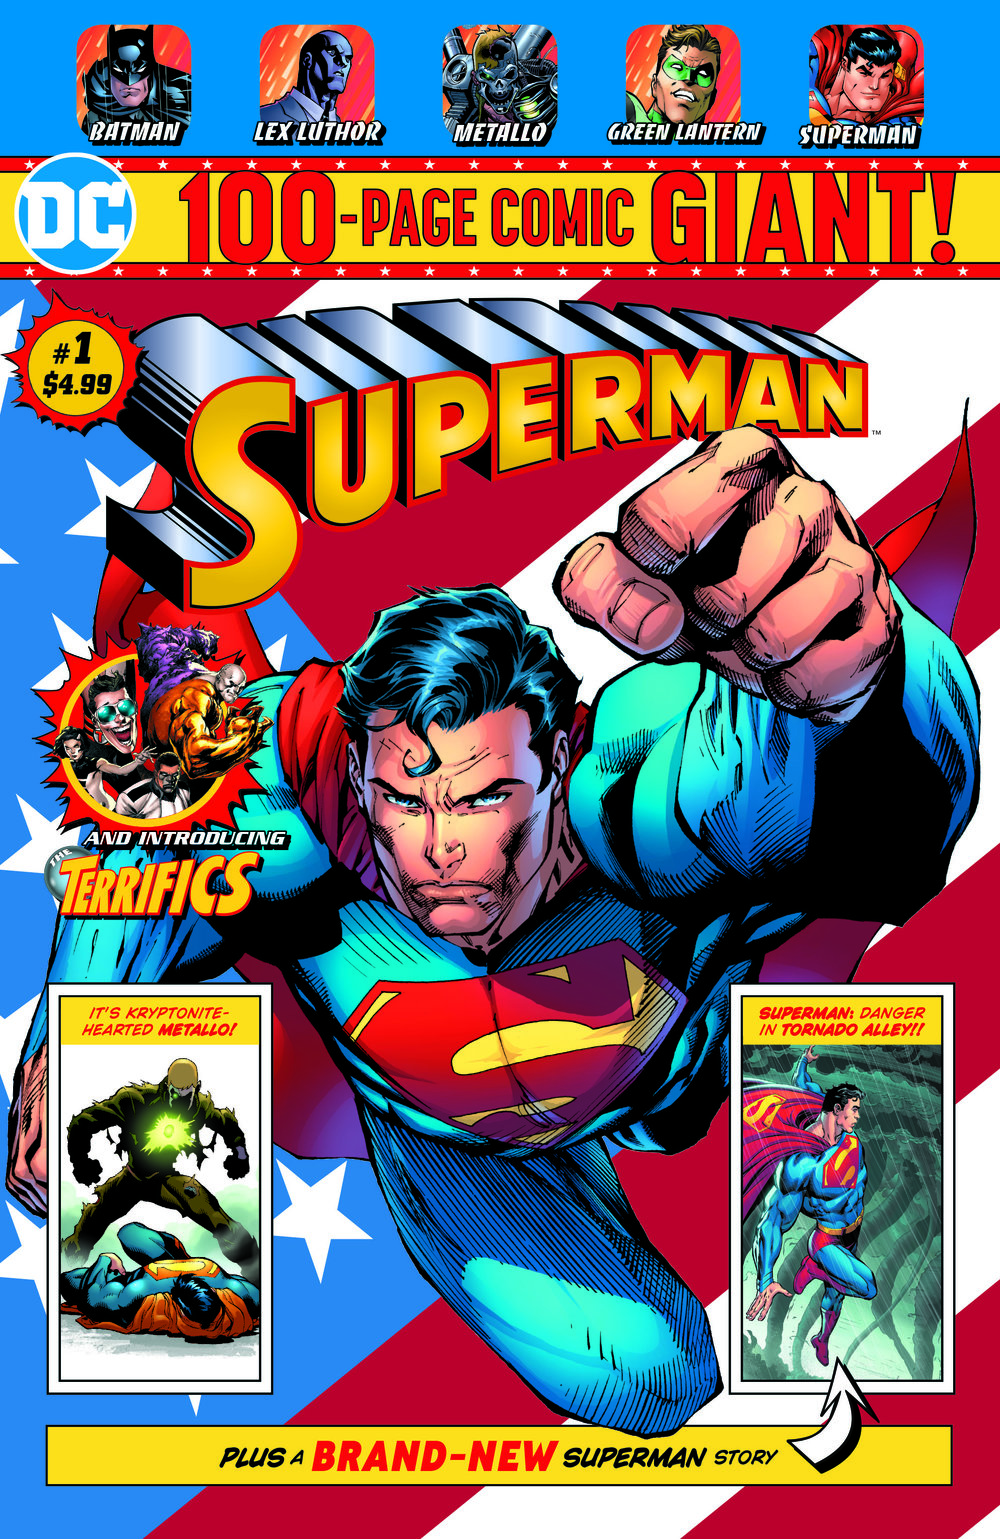 dc_100_page_walmart_comic_superman.jpg